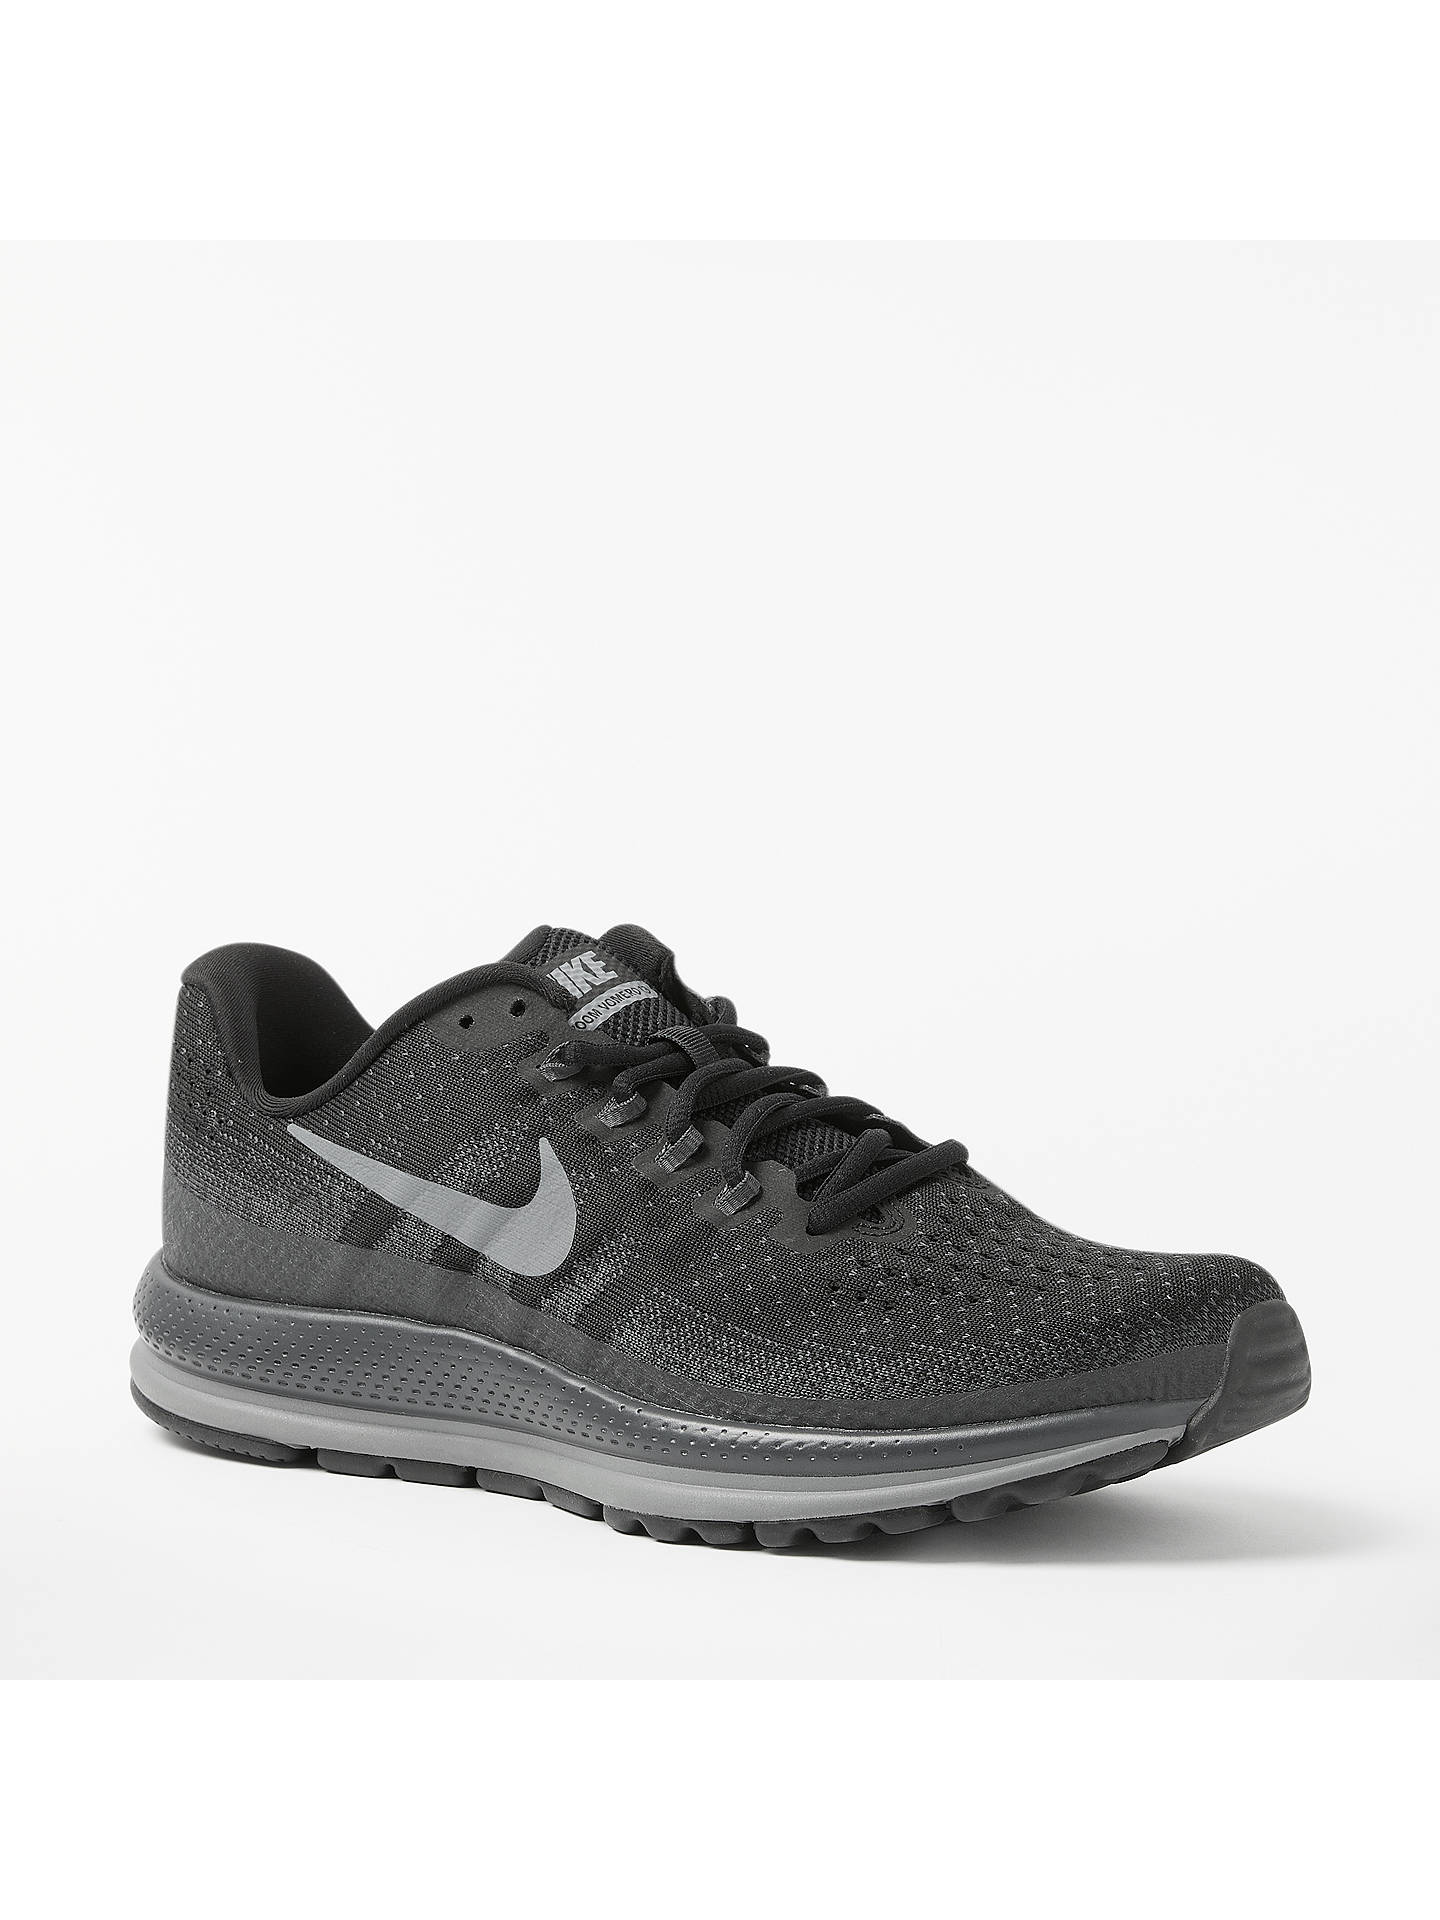 dcdd1f0bcac ... Buy Nike Air Zoom Vomero 13 Men s Running Shoes